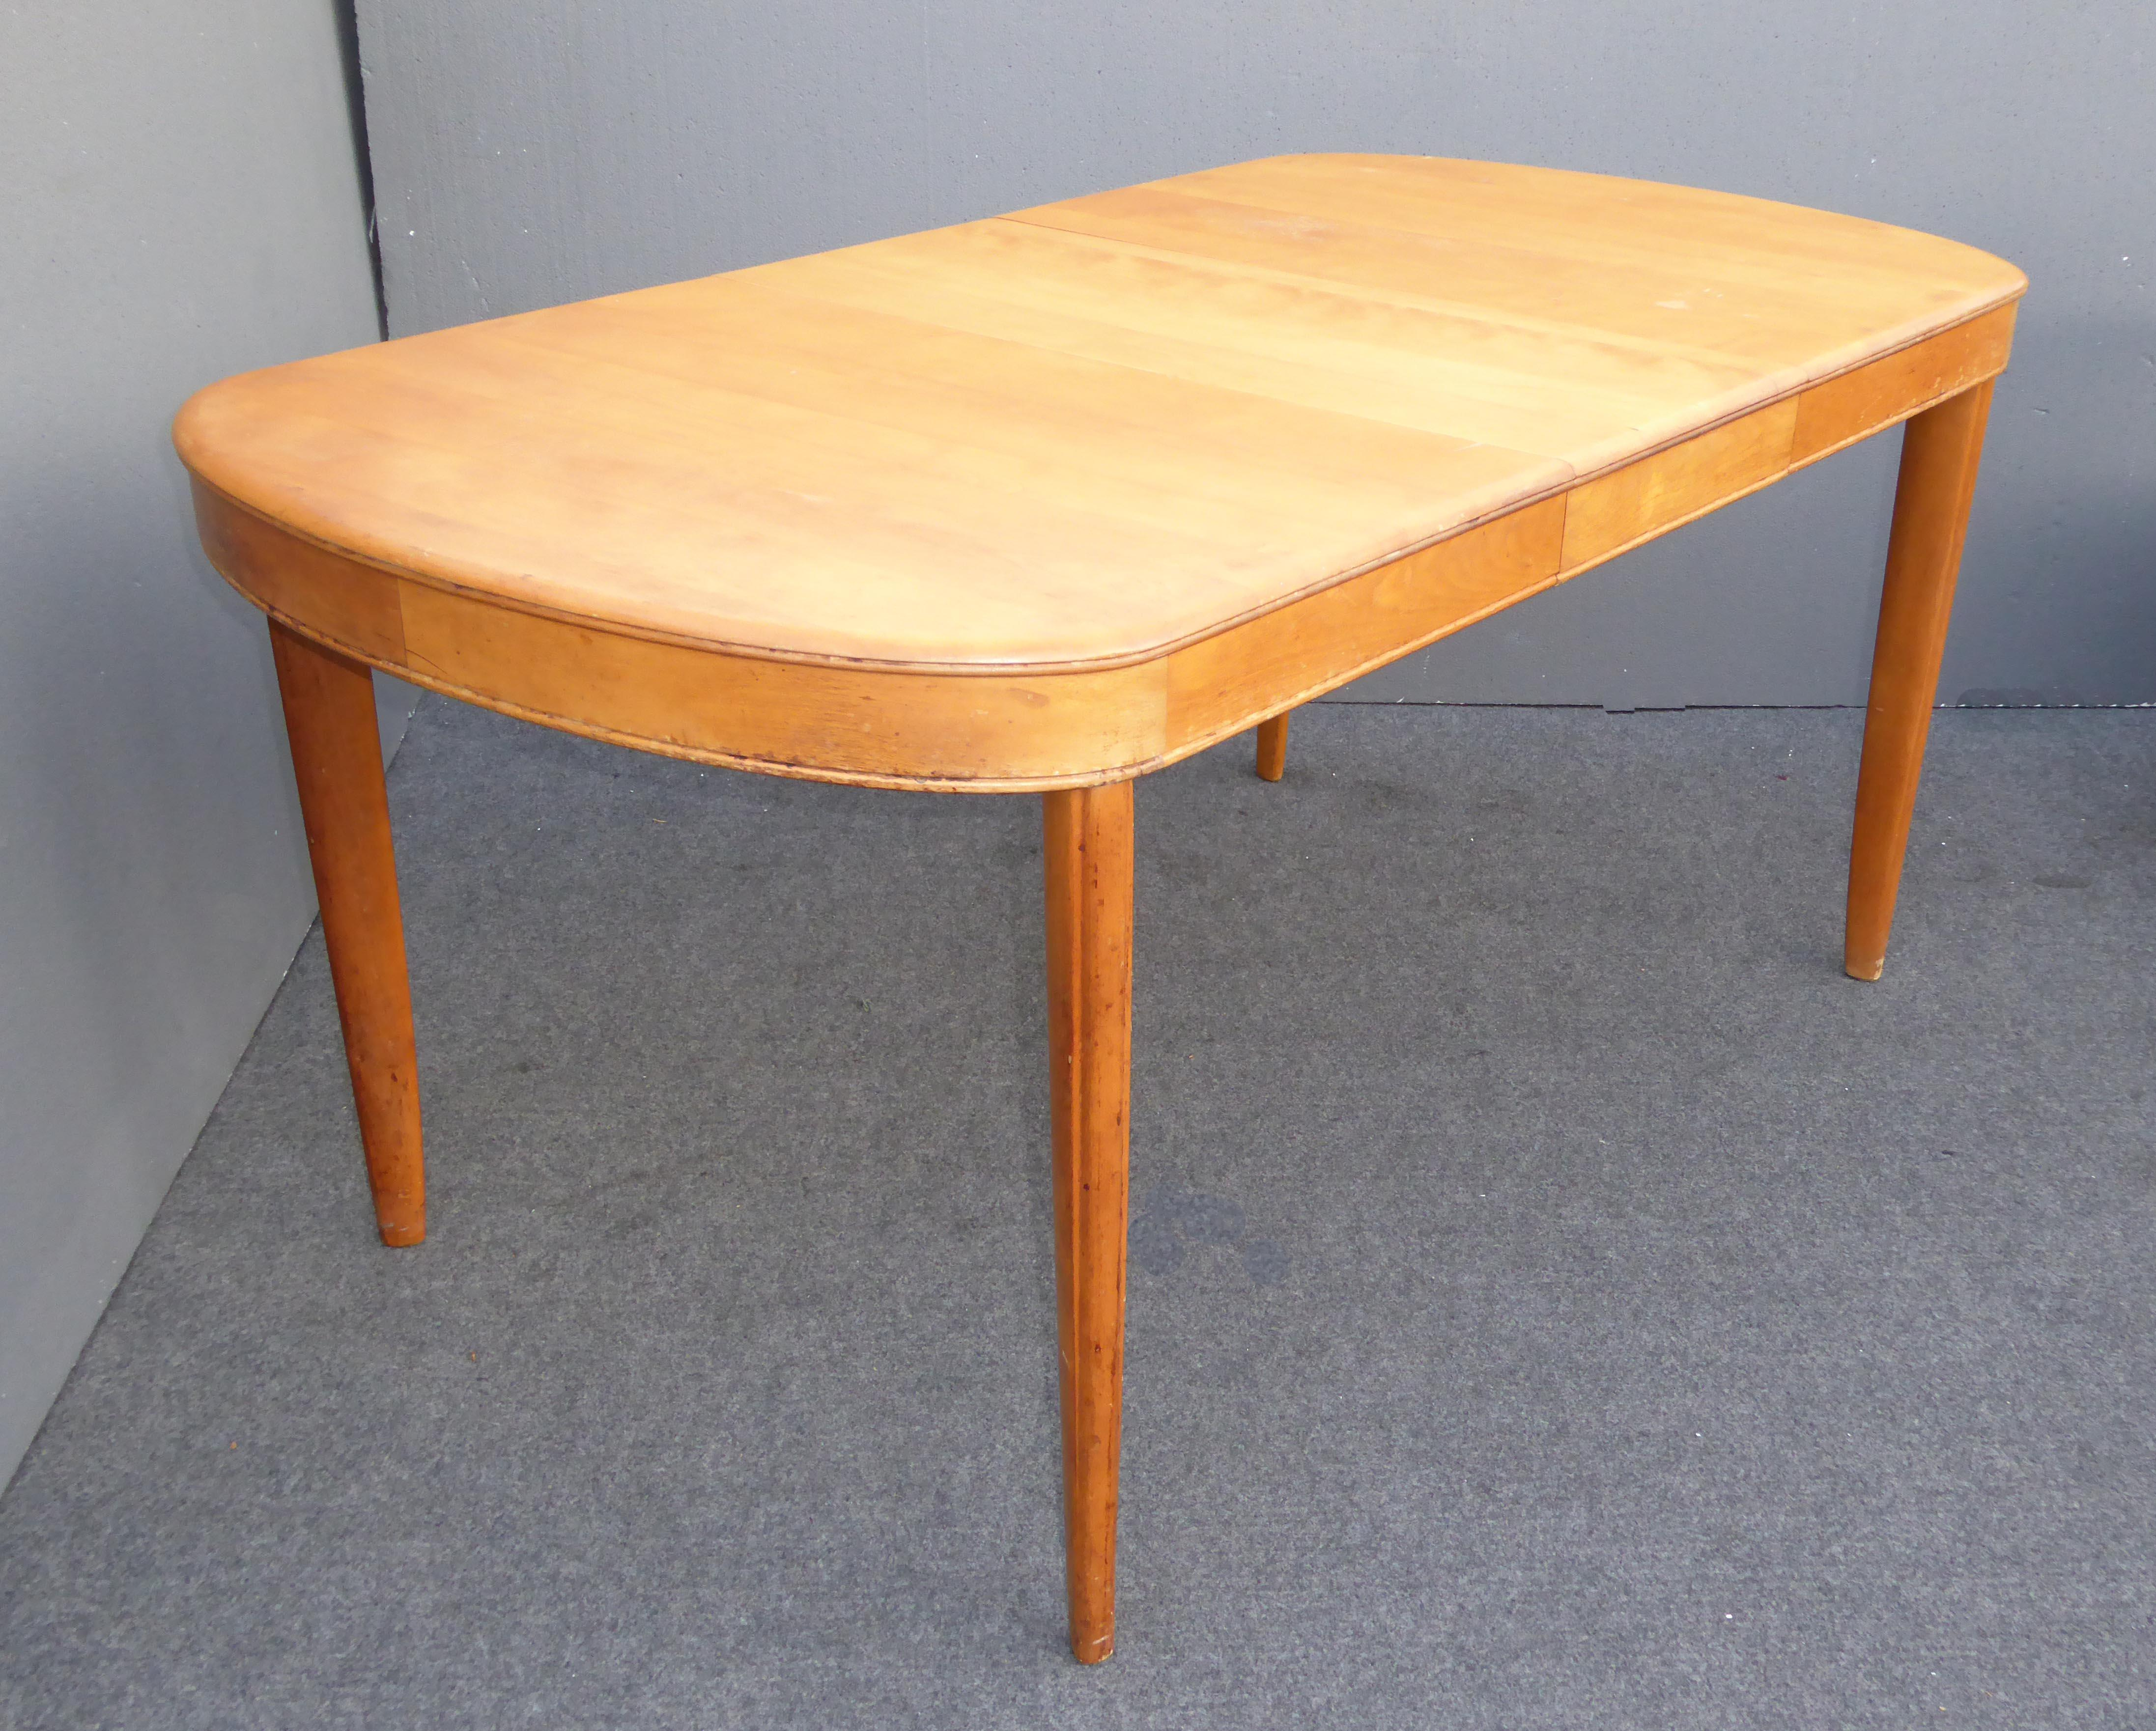 Vintage Heywood Wakefield Danish Modern Dining Table  : 6834fb40 128e 4ccf be5c 0ff539729d4daspectfitampwidth640ampheight640 from www.chairish.com size 640 x 640 jpeg 45kB